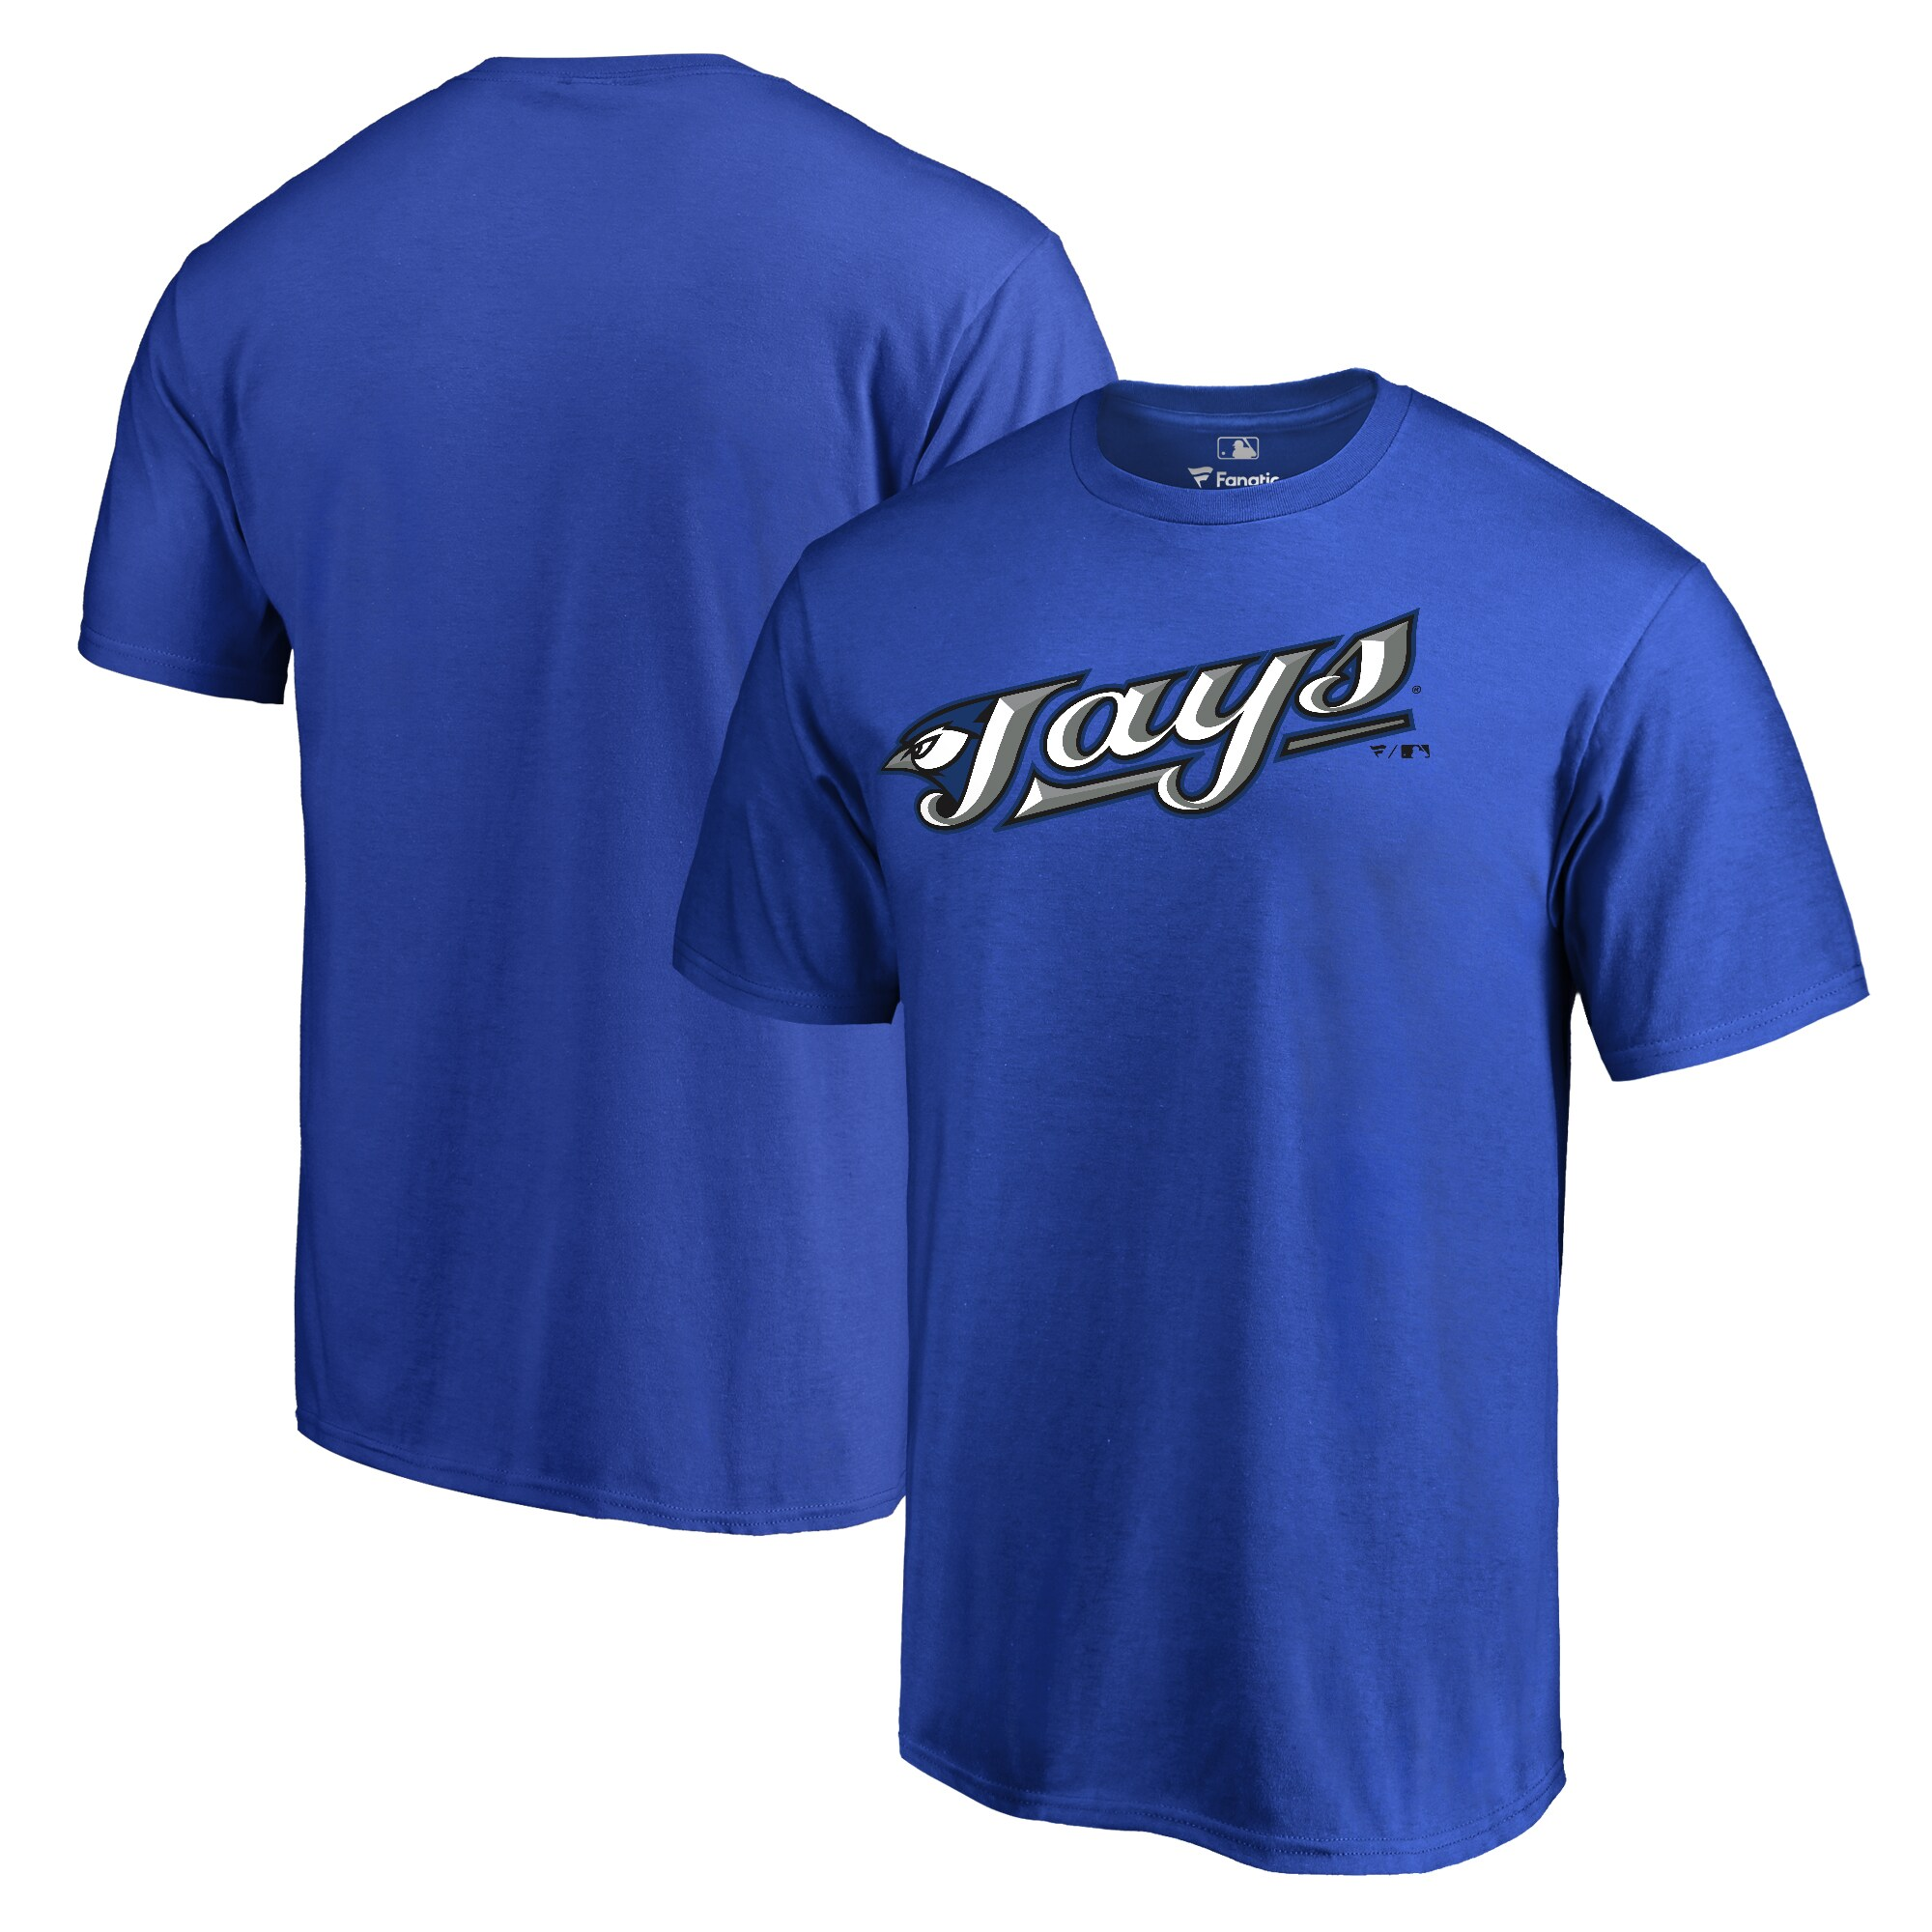 Toronto Blue Jays Fanatics Branded Big & Tall Cooperstown Collection Wahconah T-Shirt - Blue